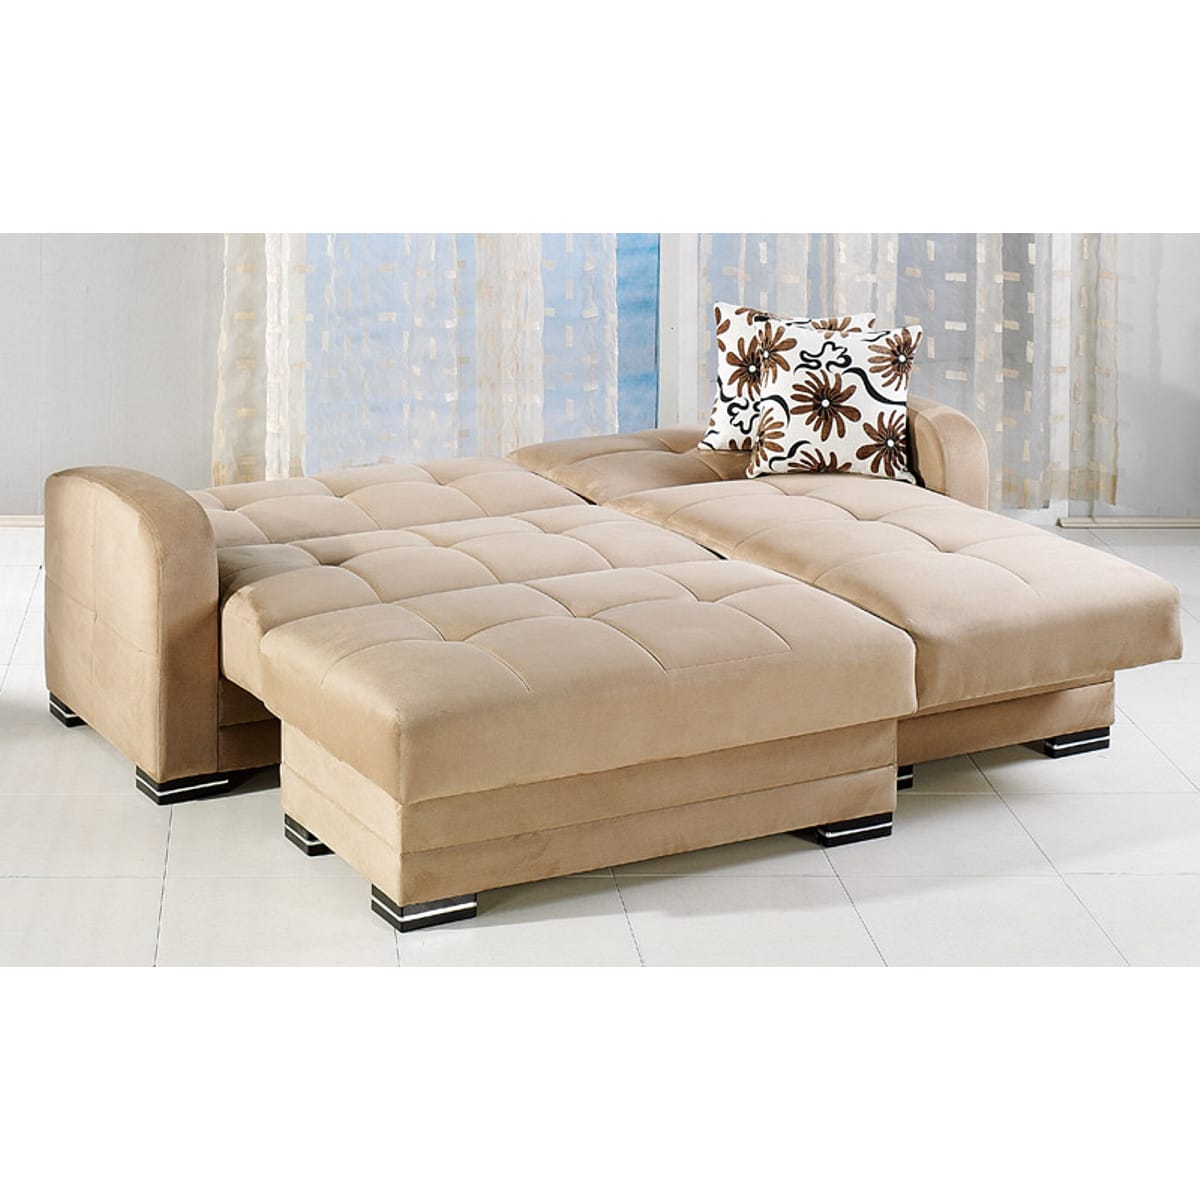 Beige sectional sofa roselawnlutheran for Beige sectional with chaise